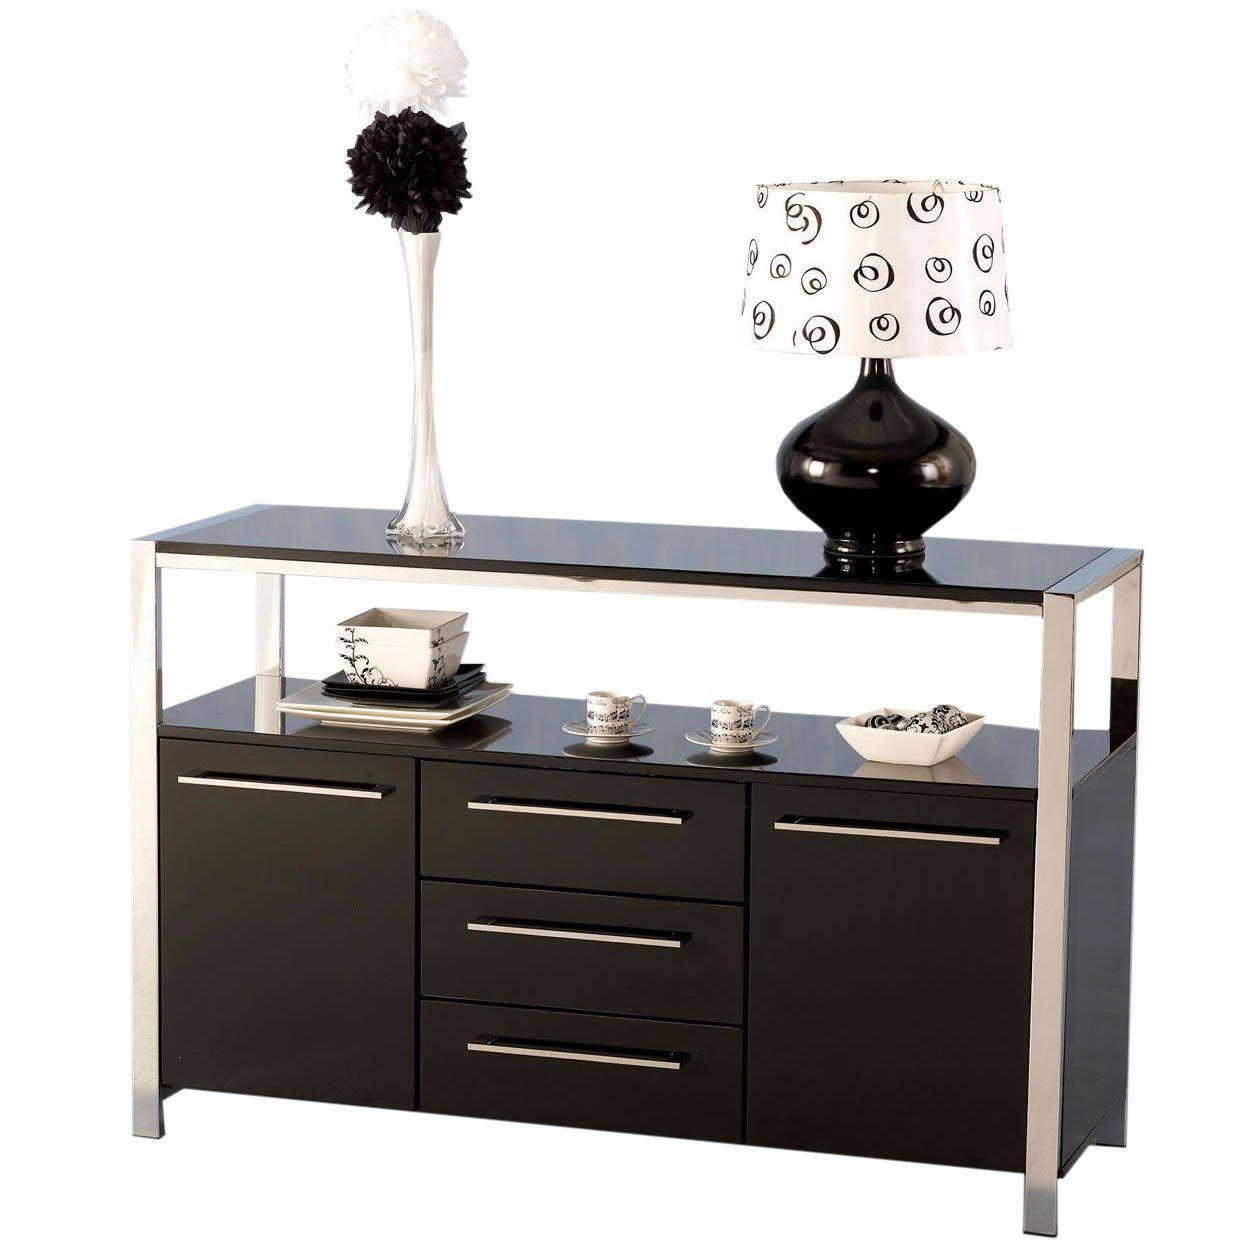 Charisma Modern Stylish Black Gloss /& Chrome 2 Door 3 Drawer Storage Sideboard